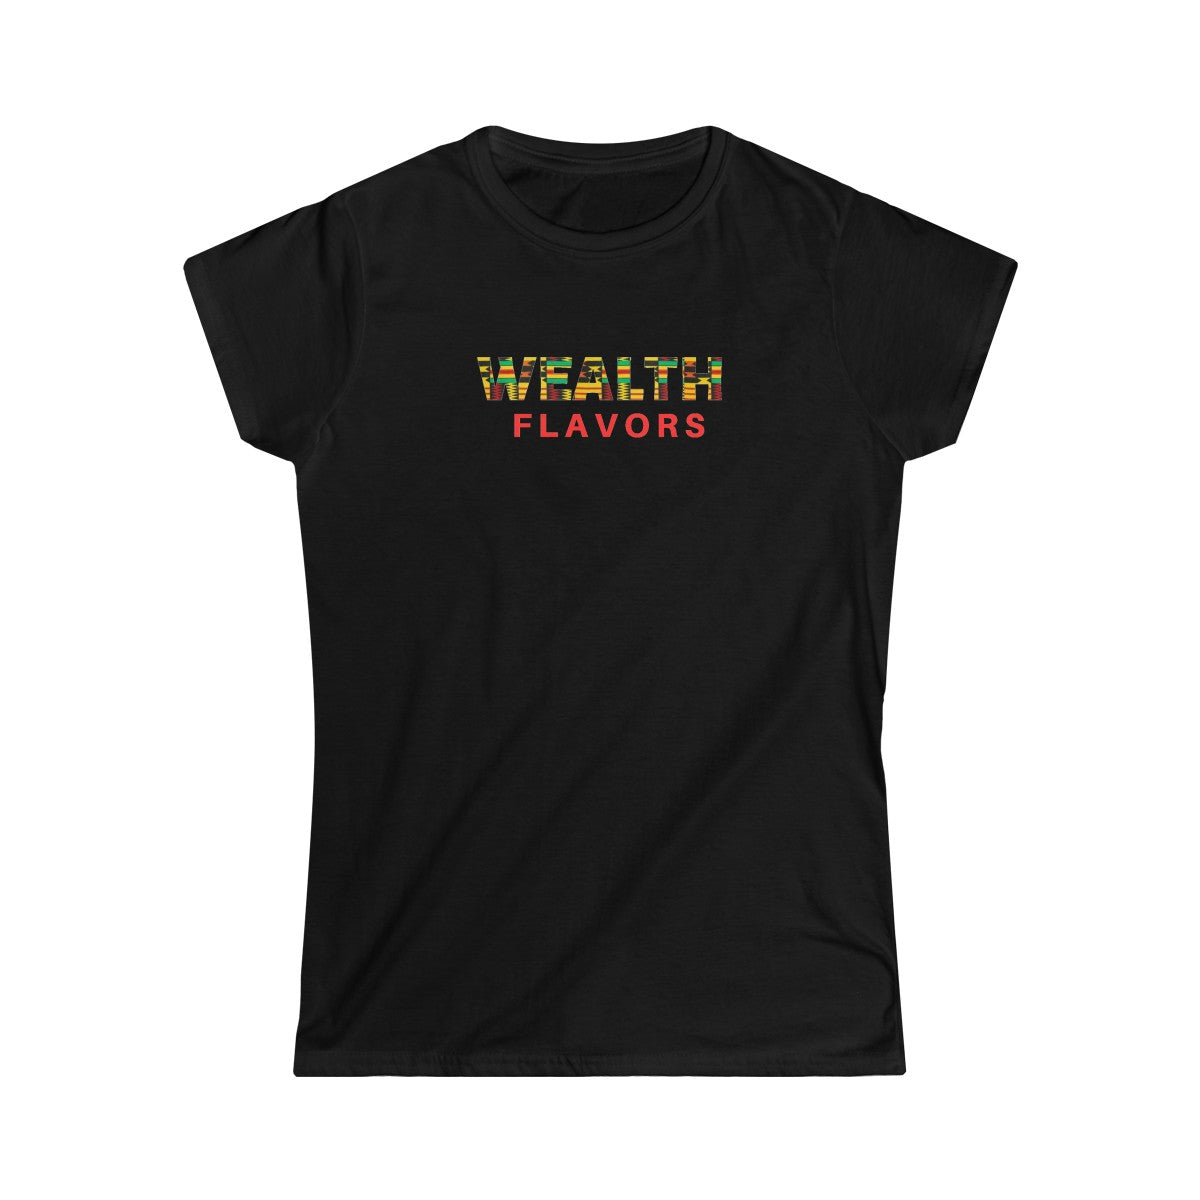 Wealth Flavors Women's Softstyle Tee - Flavorsofwealth